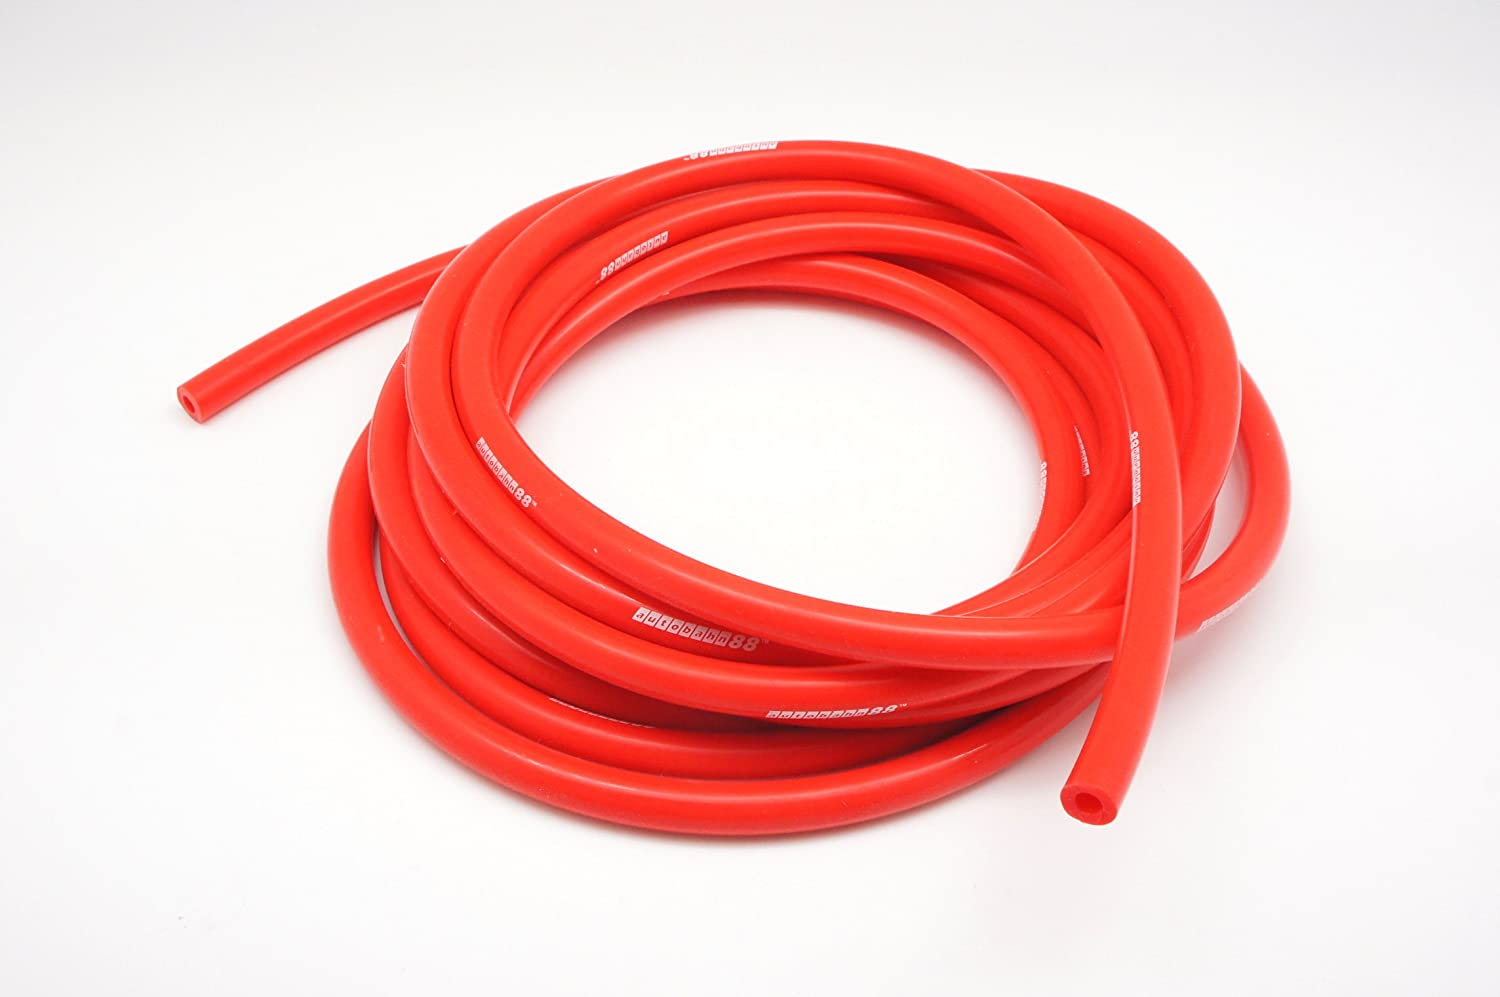 Autobahn88 Engine Room Silicone Vacuum Hose Dress Up DIY Kit Fit All Models of Fiat Red